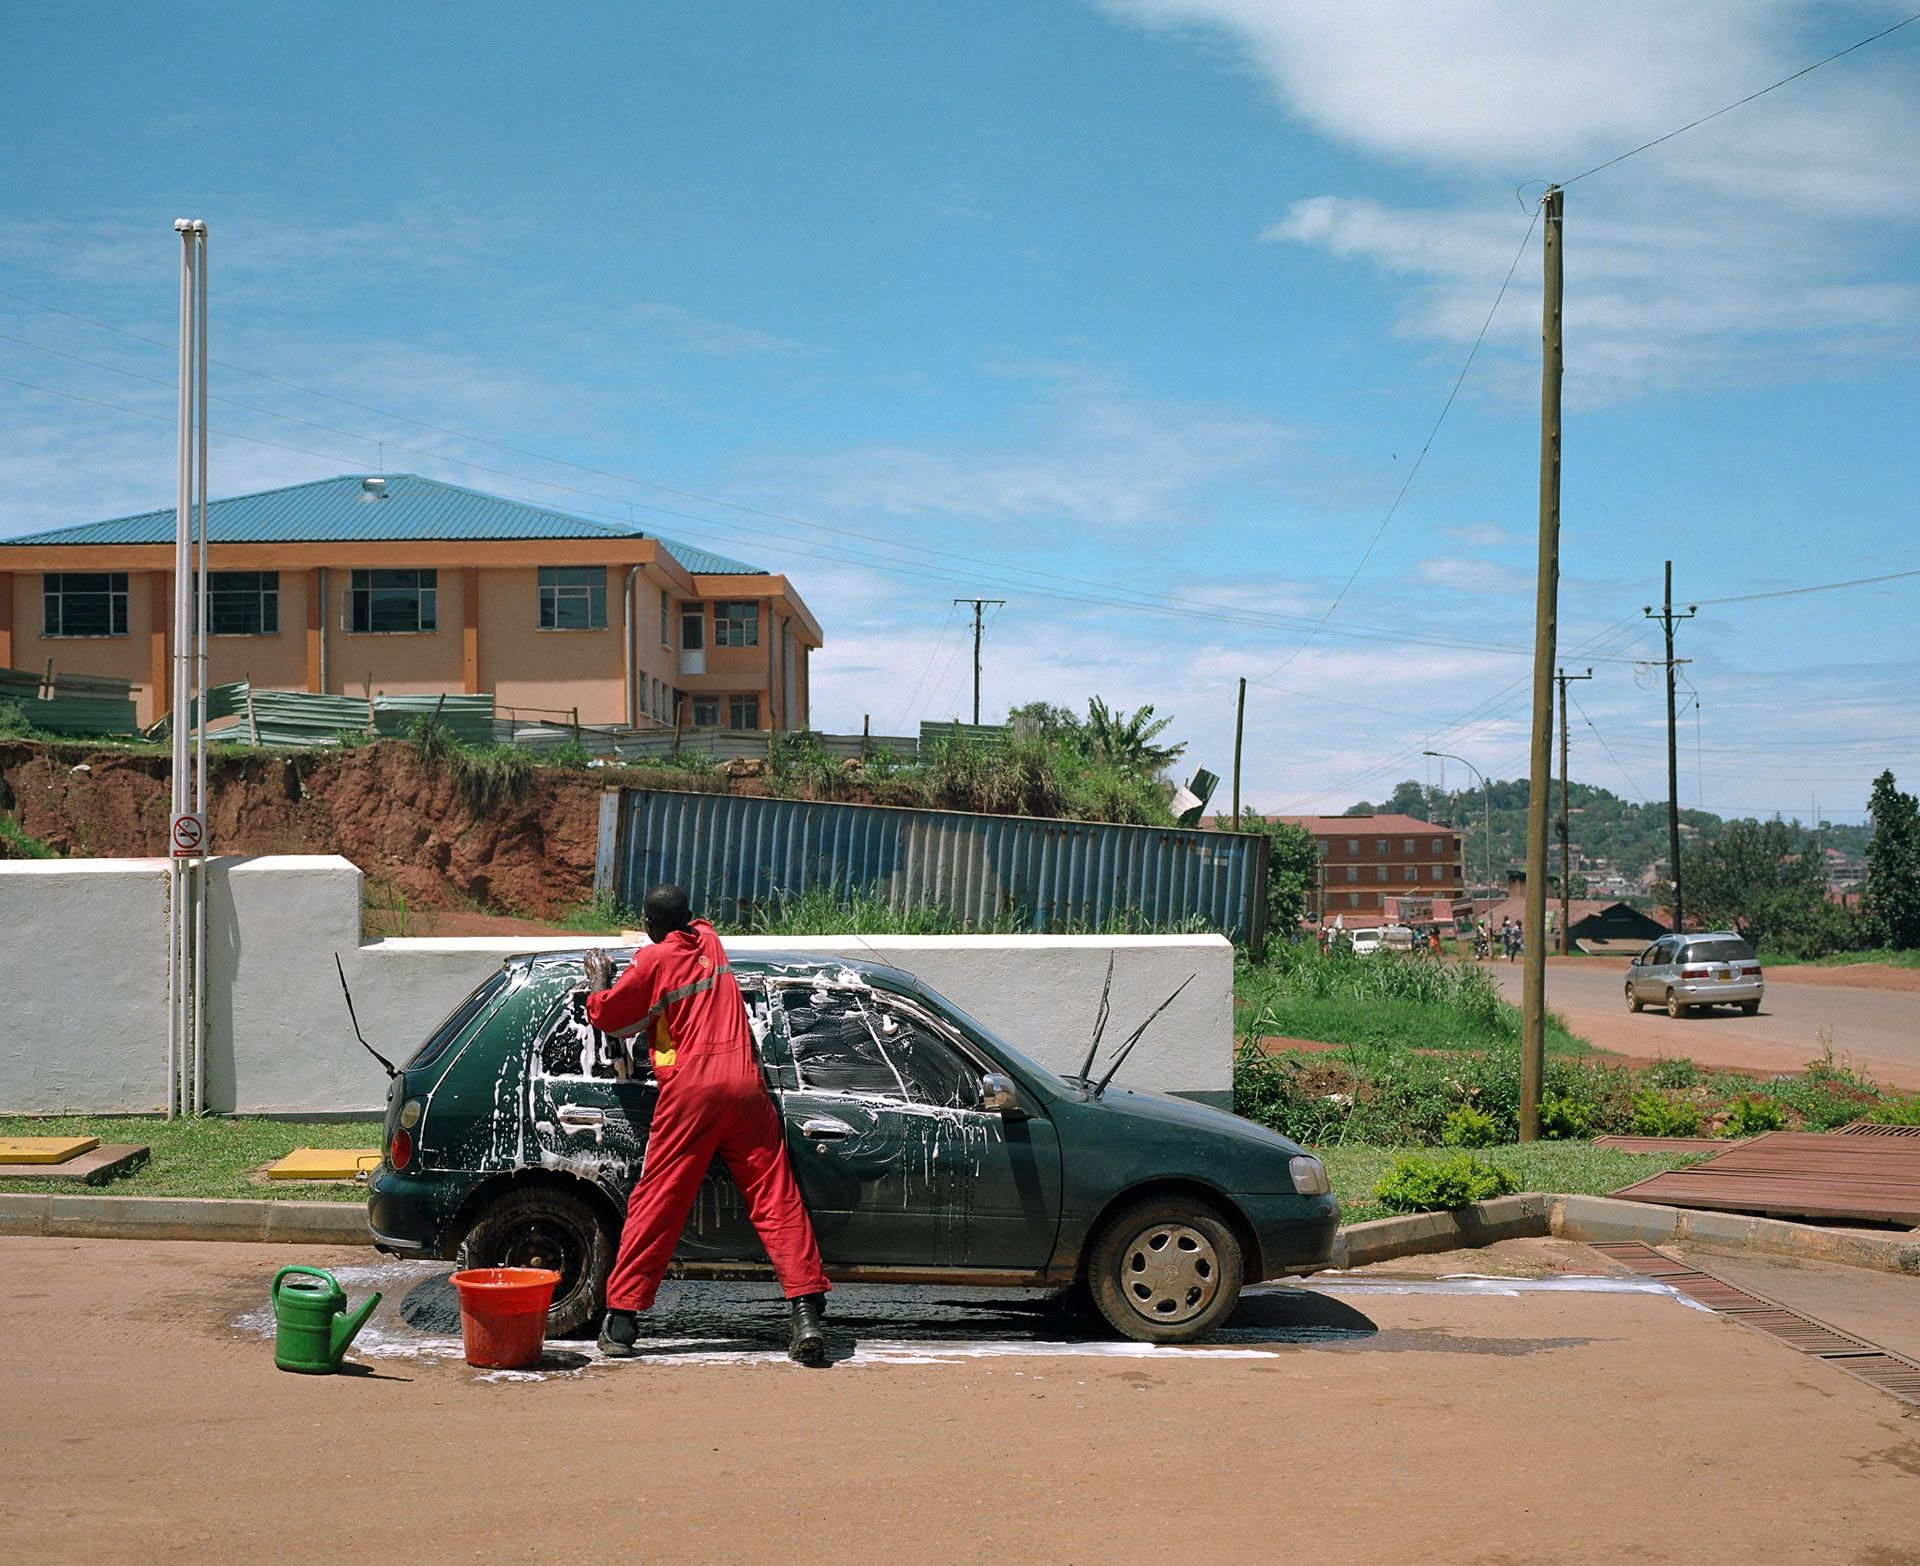 black man all dressed in red washing a dark green car by hand in the sun by Alexi Hobbs in Uganda for Football for Good with Sportsnet